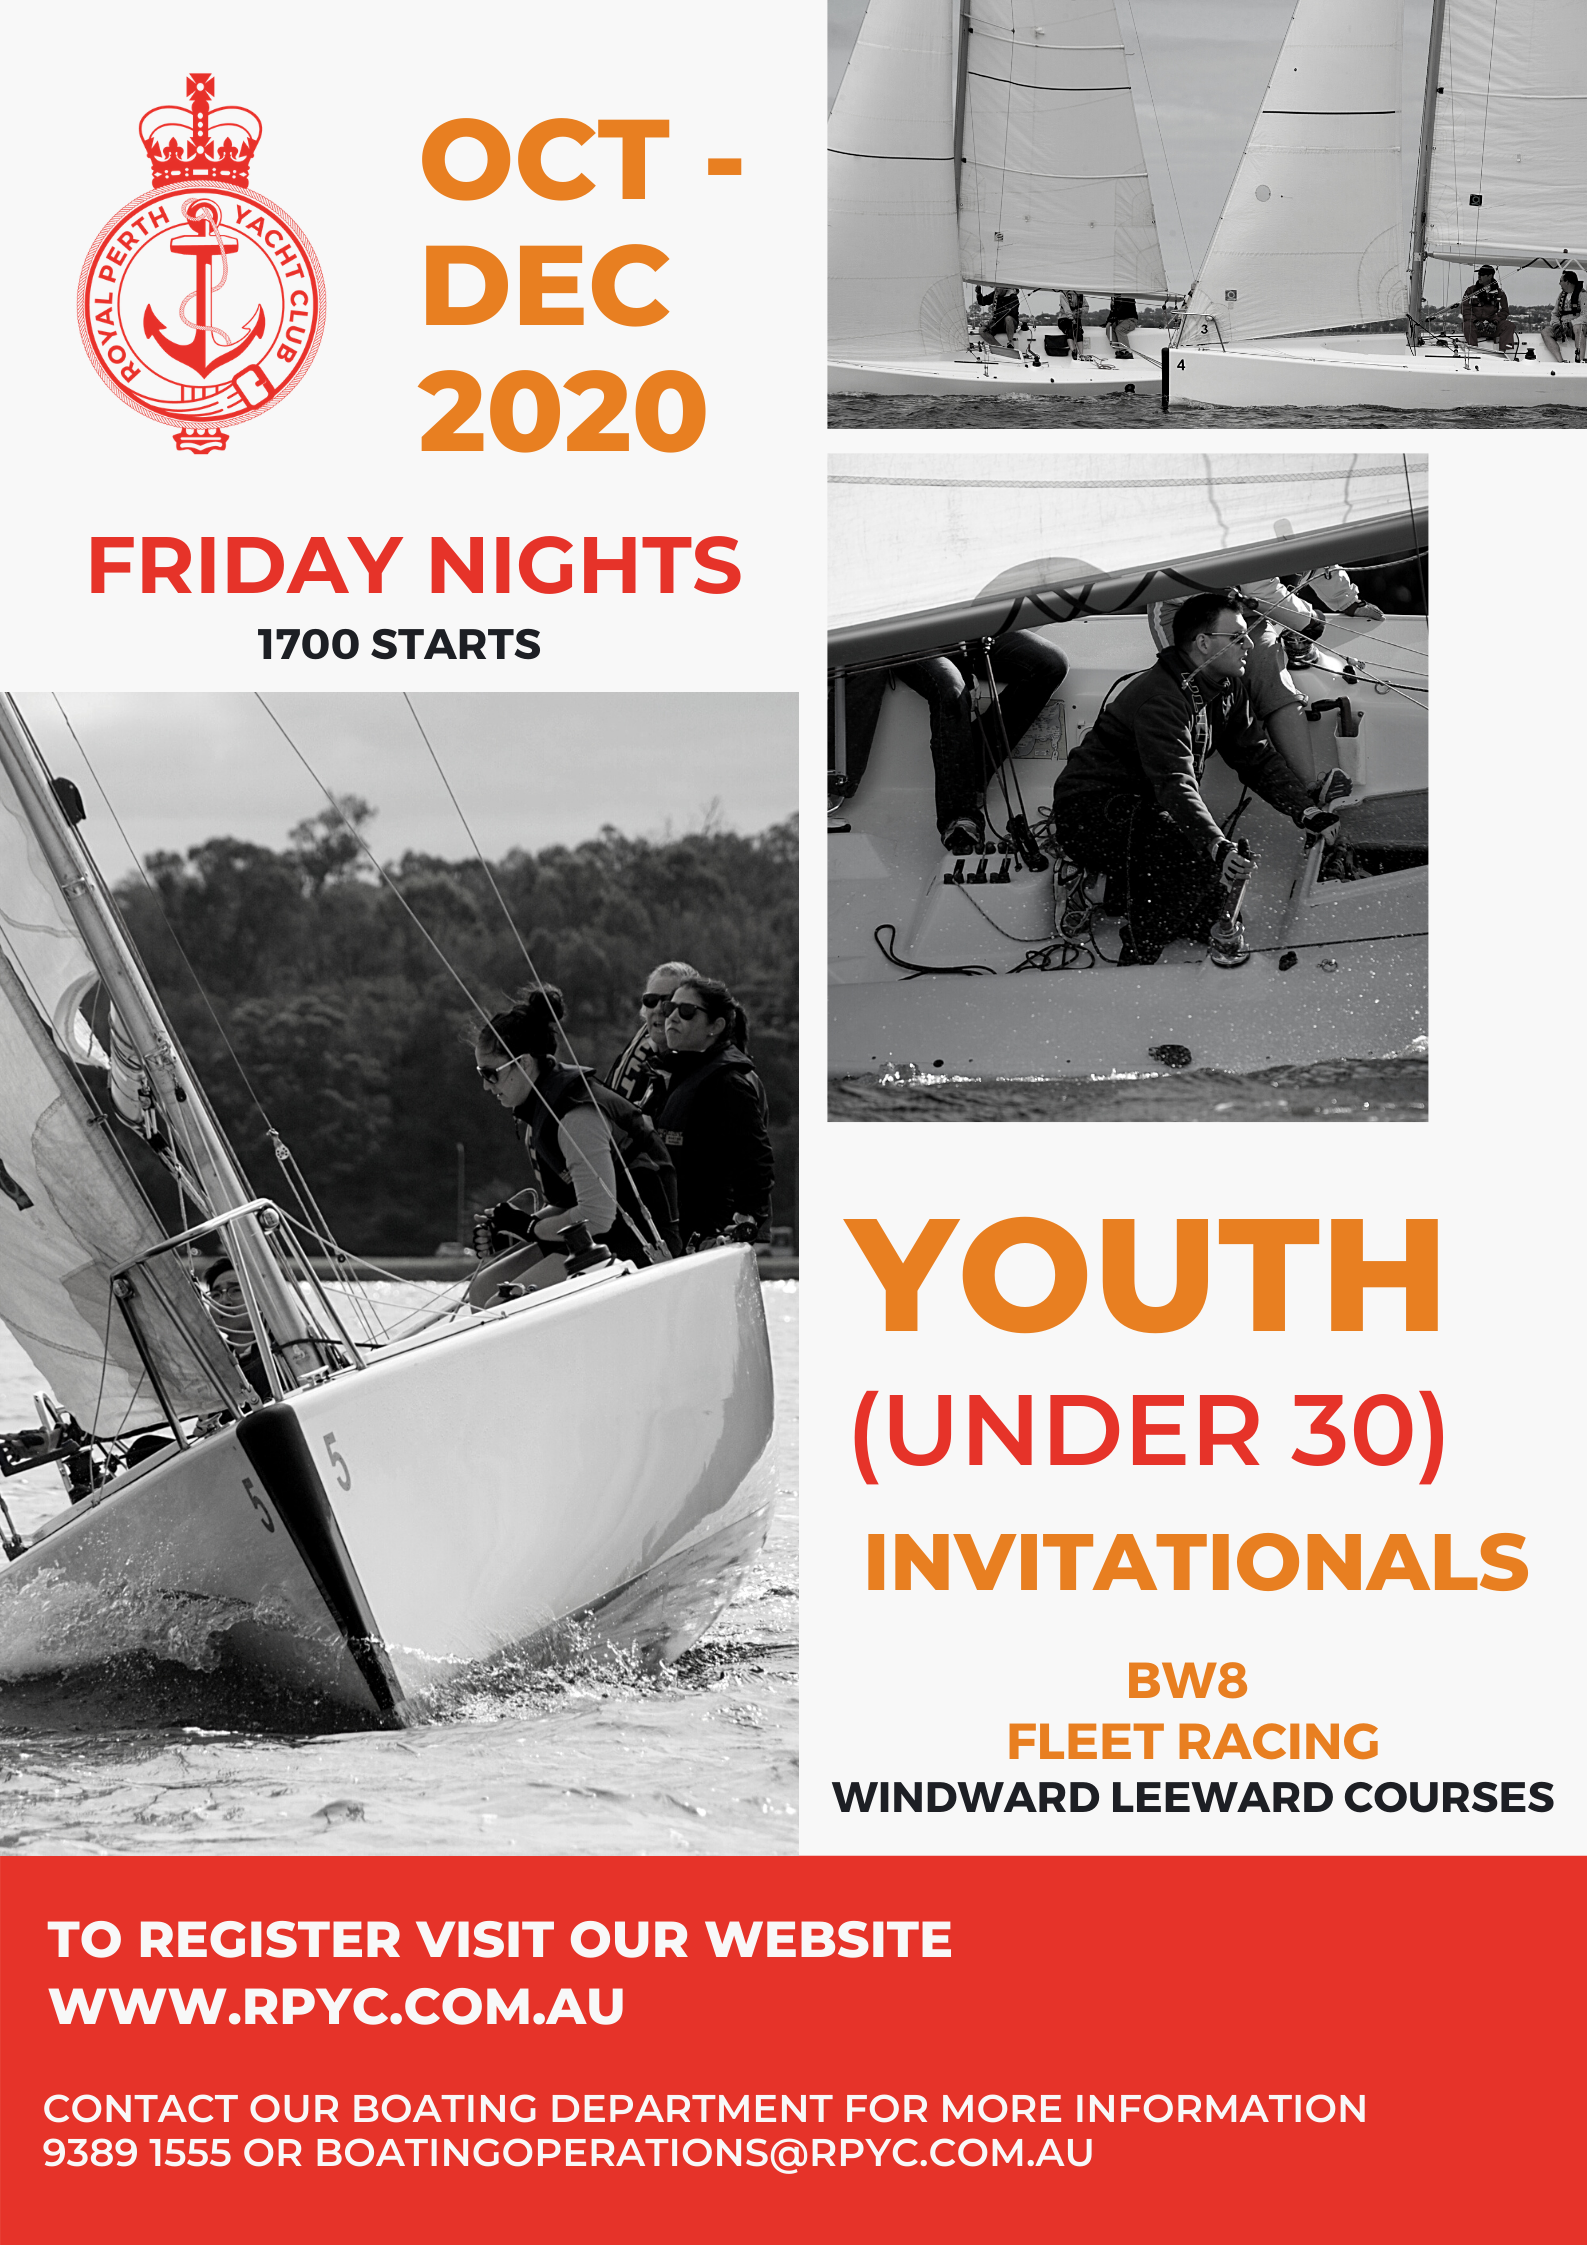 YOUTH INVITATIONALS